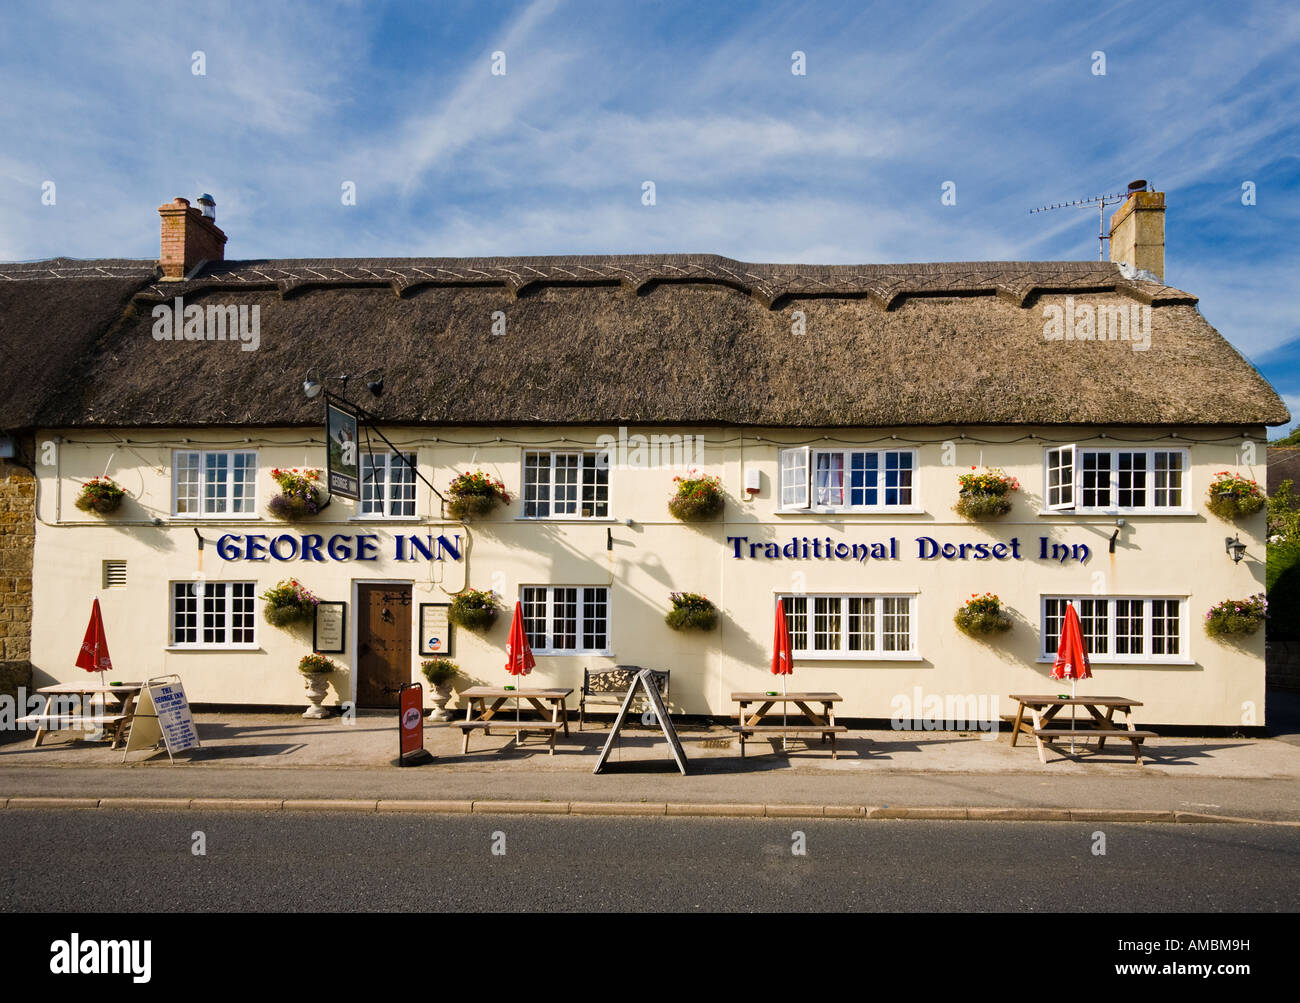 English country pub in the village of Chideock in West Dorset, England, UK - Stock Image